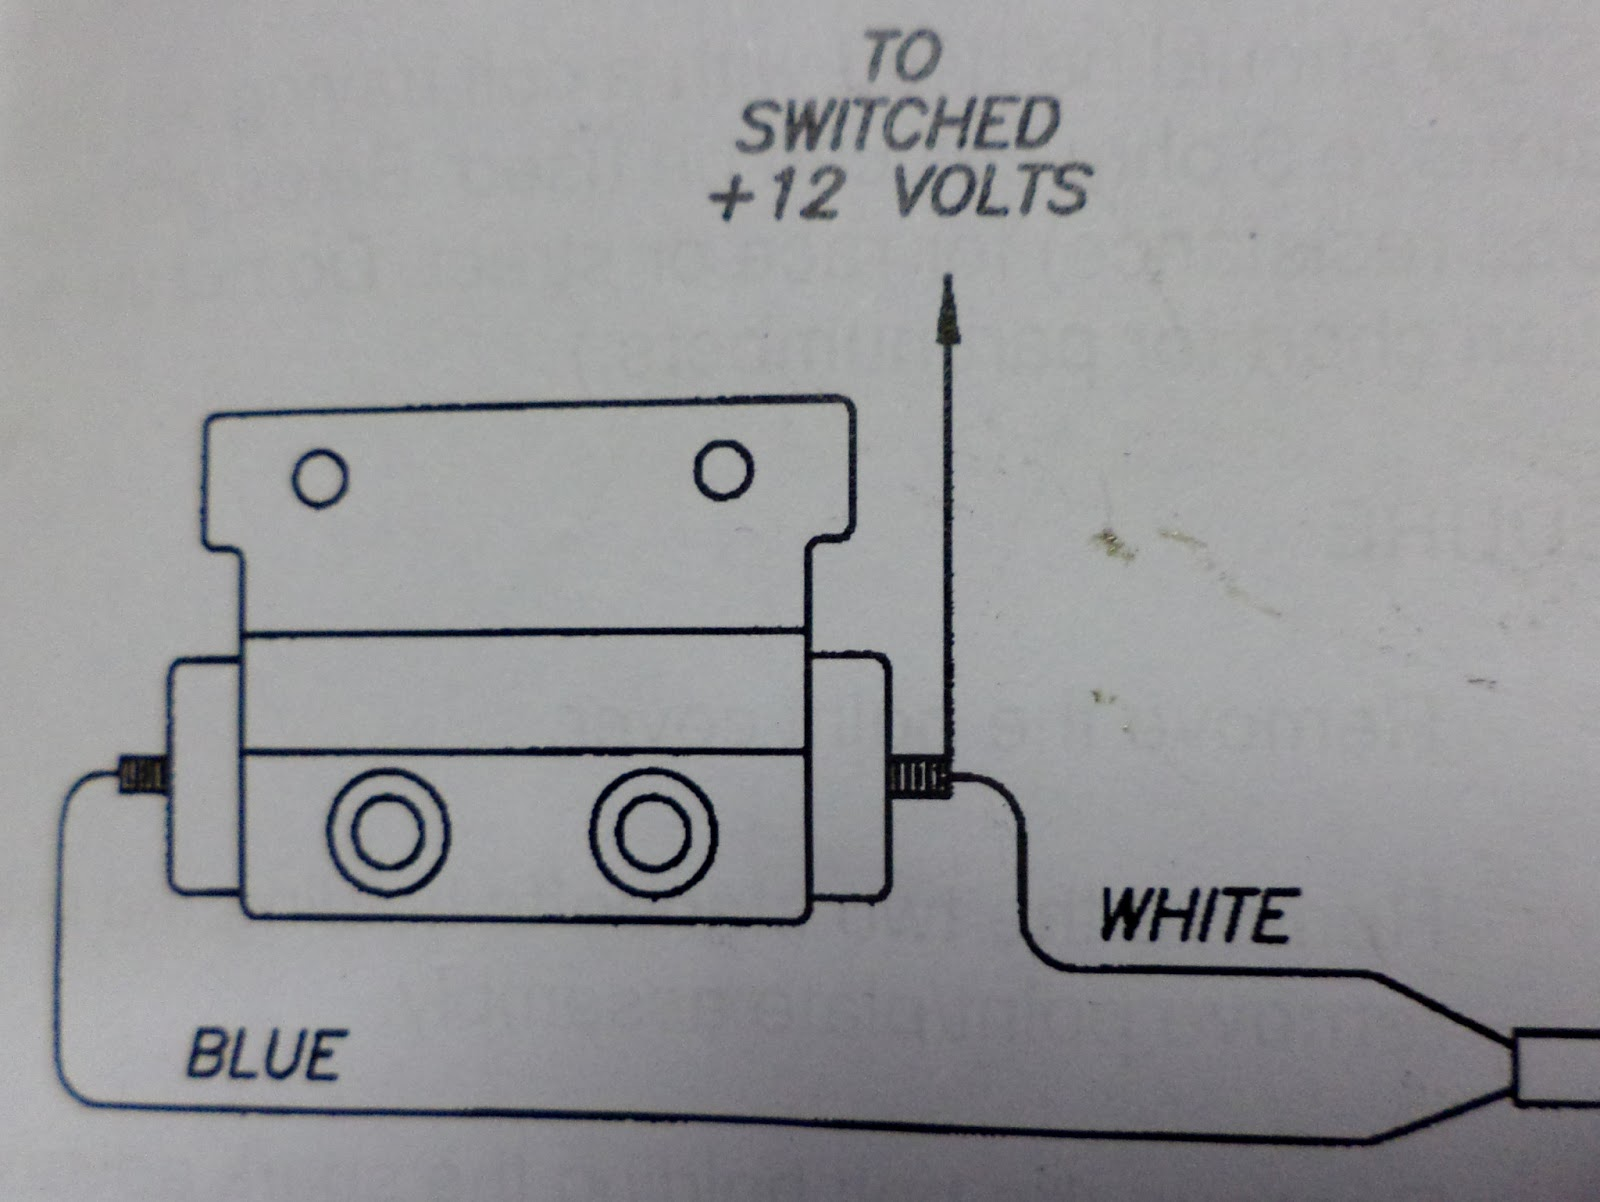 DSC00049 dyna wiring diagram dyna s ignition wiring schematic \u2022 free wiring zx9 wiring diagram at n-0.co